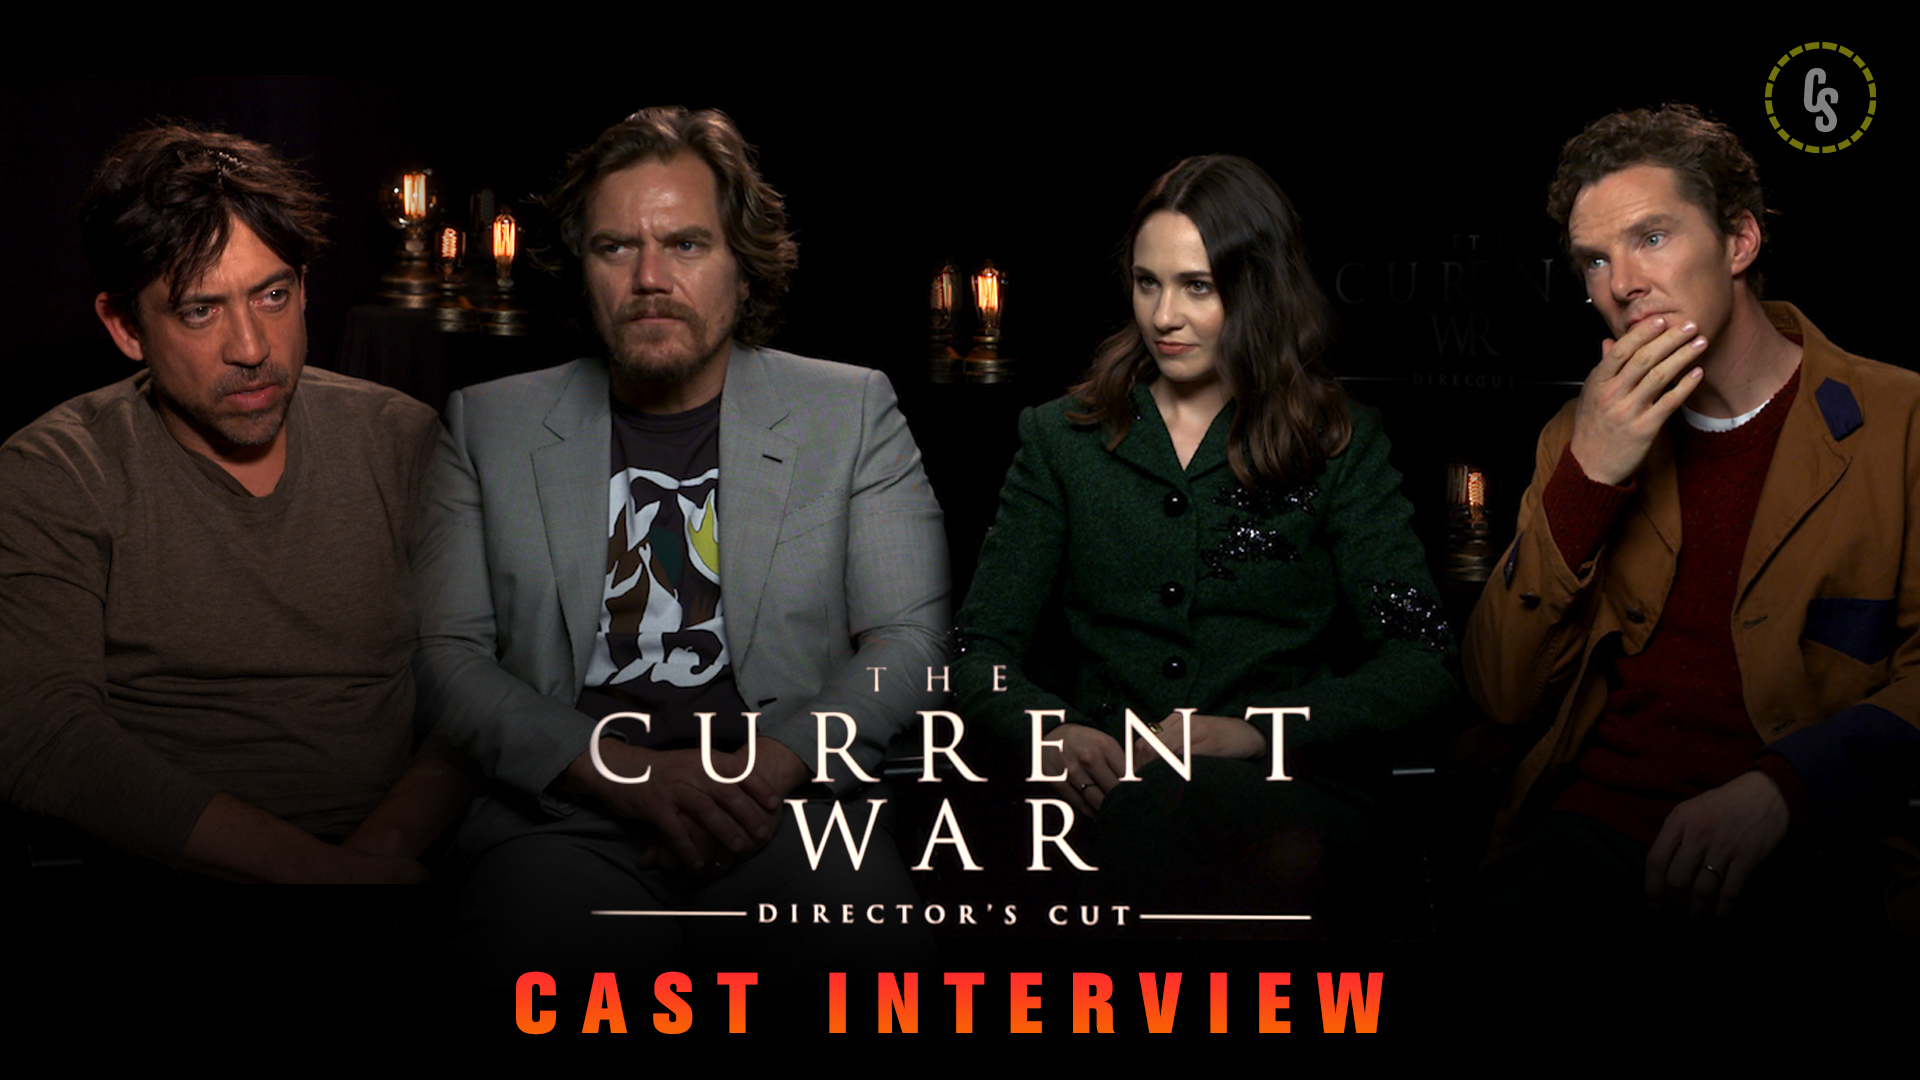 CS Video: The Current War